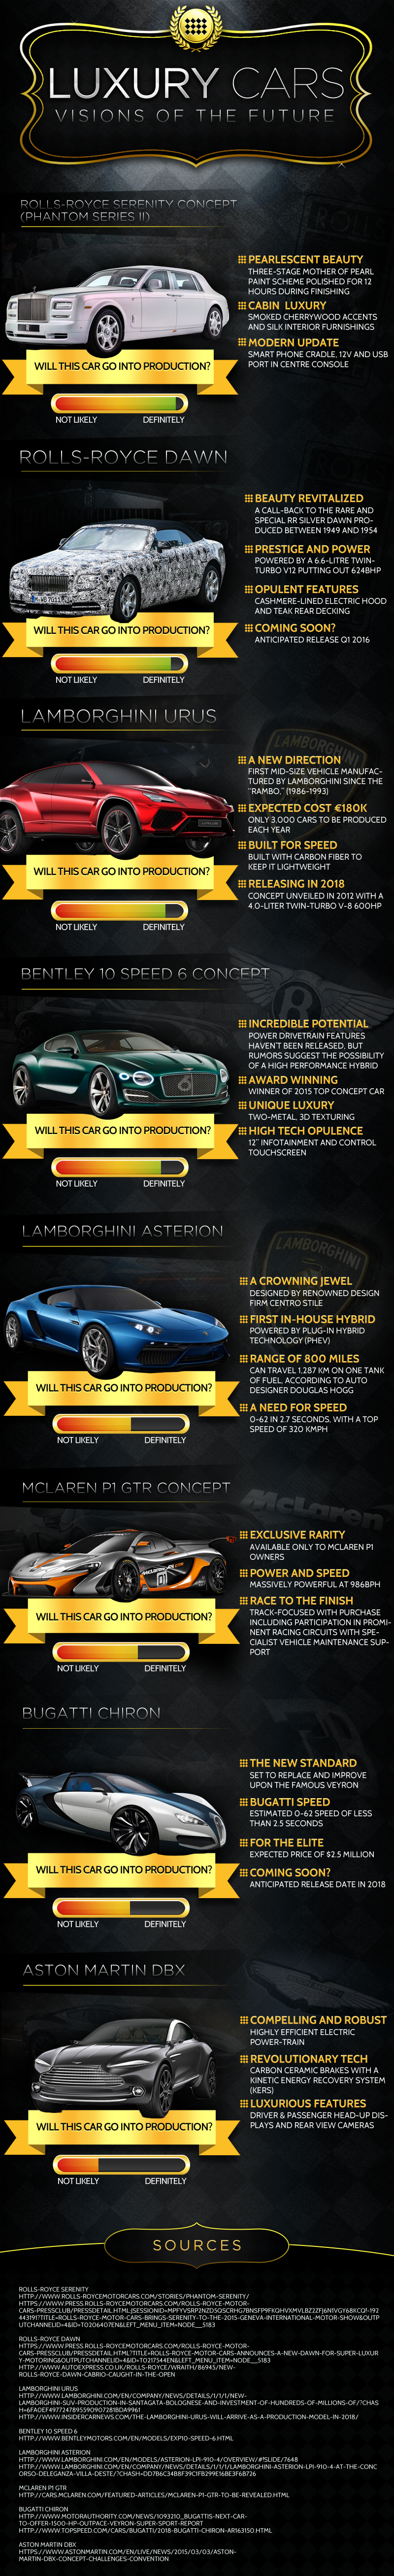 Luxury Cars of the Future: 2016 & Beyond